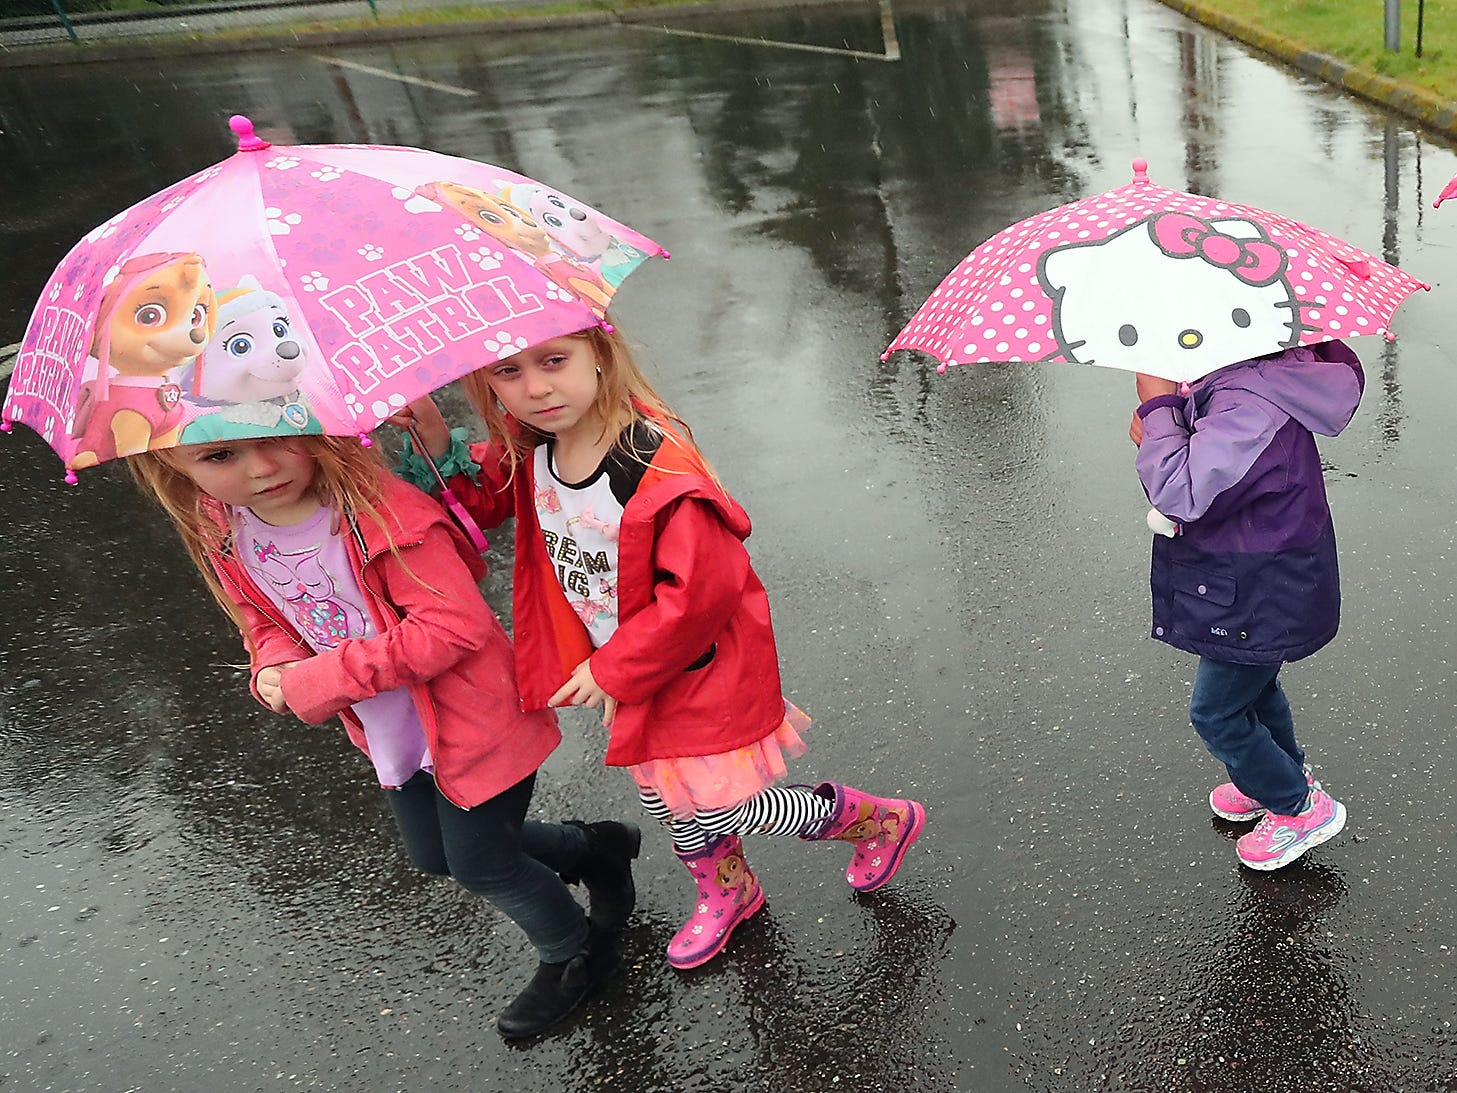 Students in Samantha Klump's pre-kindergarten class at Peace Lutheran School in Bremerton parade through the parking lot with their umbrellas on a rainy Friday, February 1, 2019. Mrs. Klump uses the umbrella parade as part of her lesson plan for when students are learning about the letter U and also uses the parade as an opportunity to teach the proper etiquette on umbrella usage.